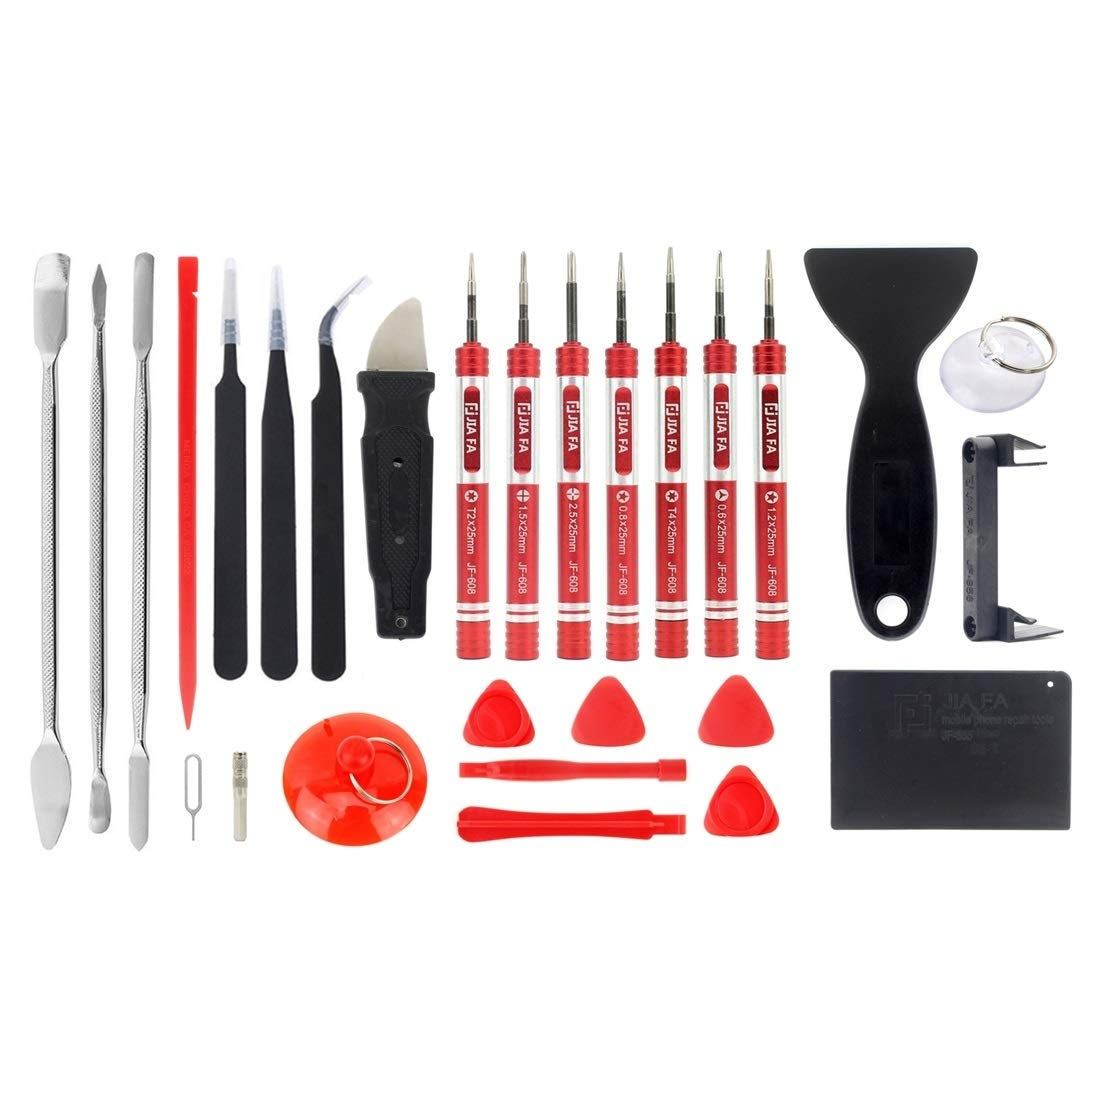 Professional Cell Phone Accessory Kits Compatible with Repair Cell Phone, iPhone, MacBook and More JF-8175 28 in 1 Electronics Repair Tool Kit with Portable Bag by DINGGUANGHE-PHONE REPAIR TOOL